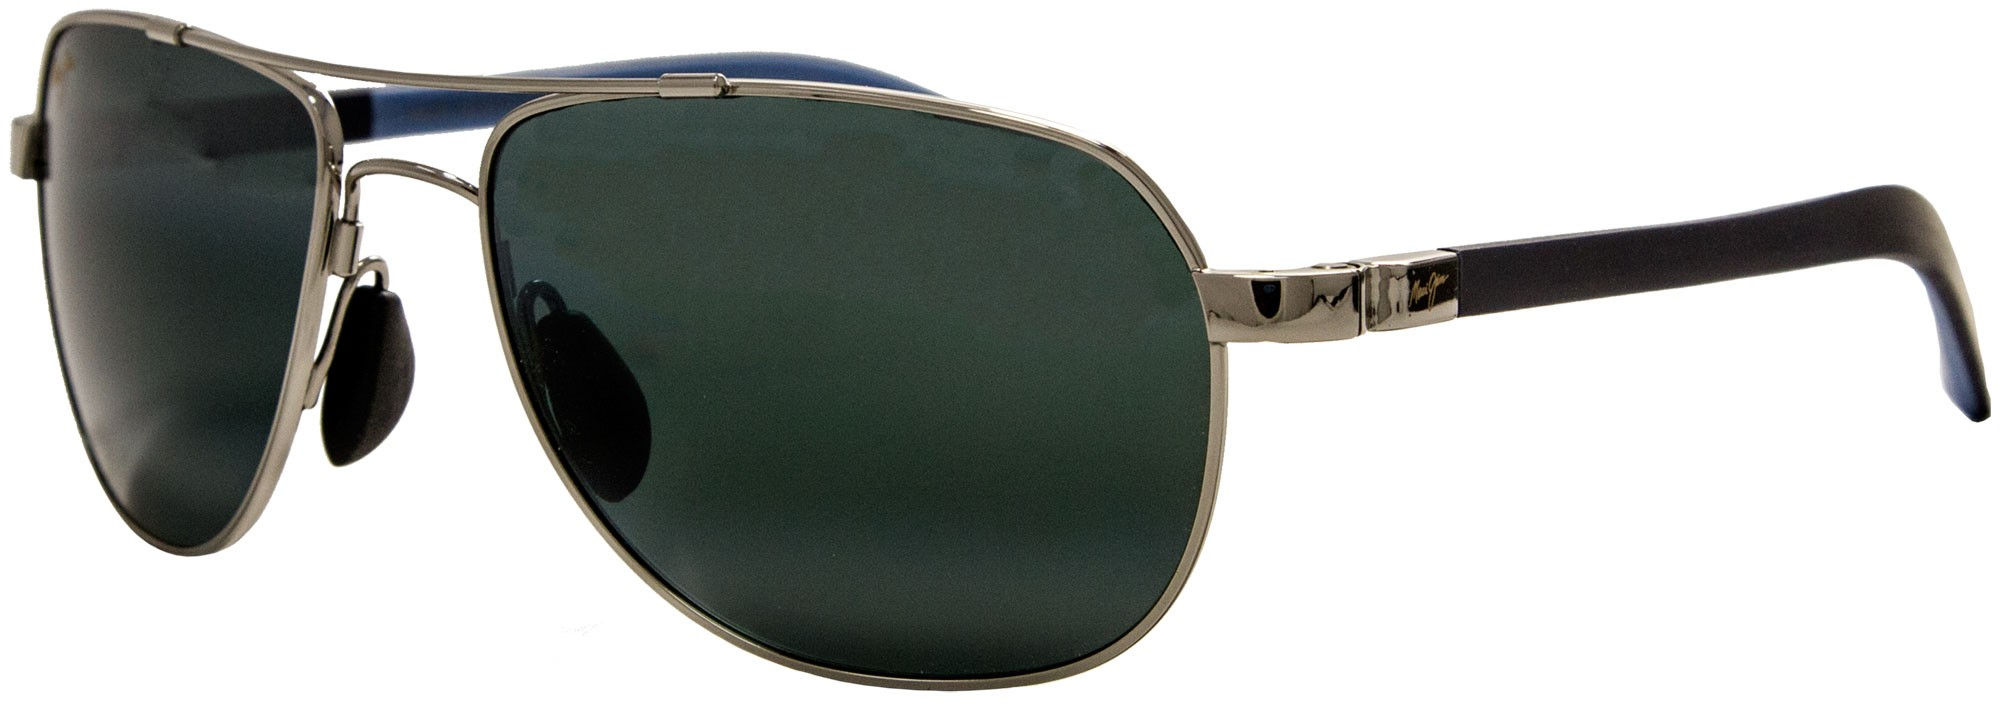 Maui Jim Guardrails 327-17 2